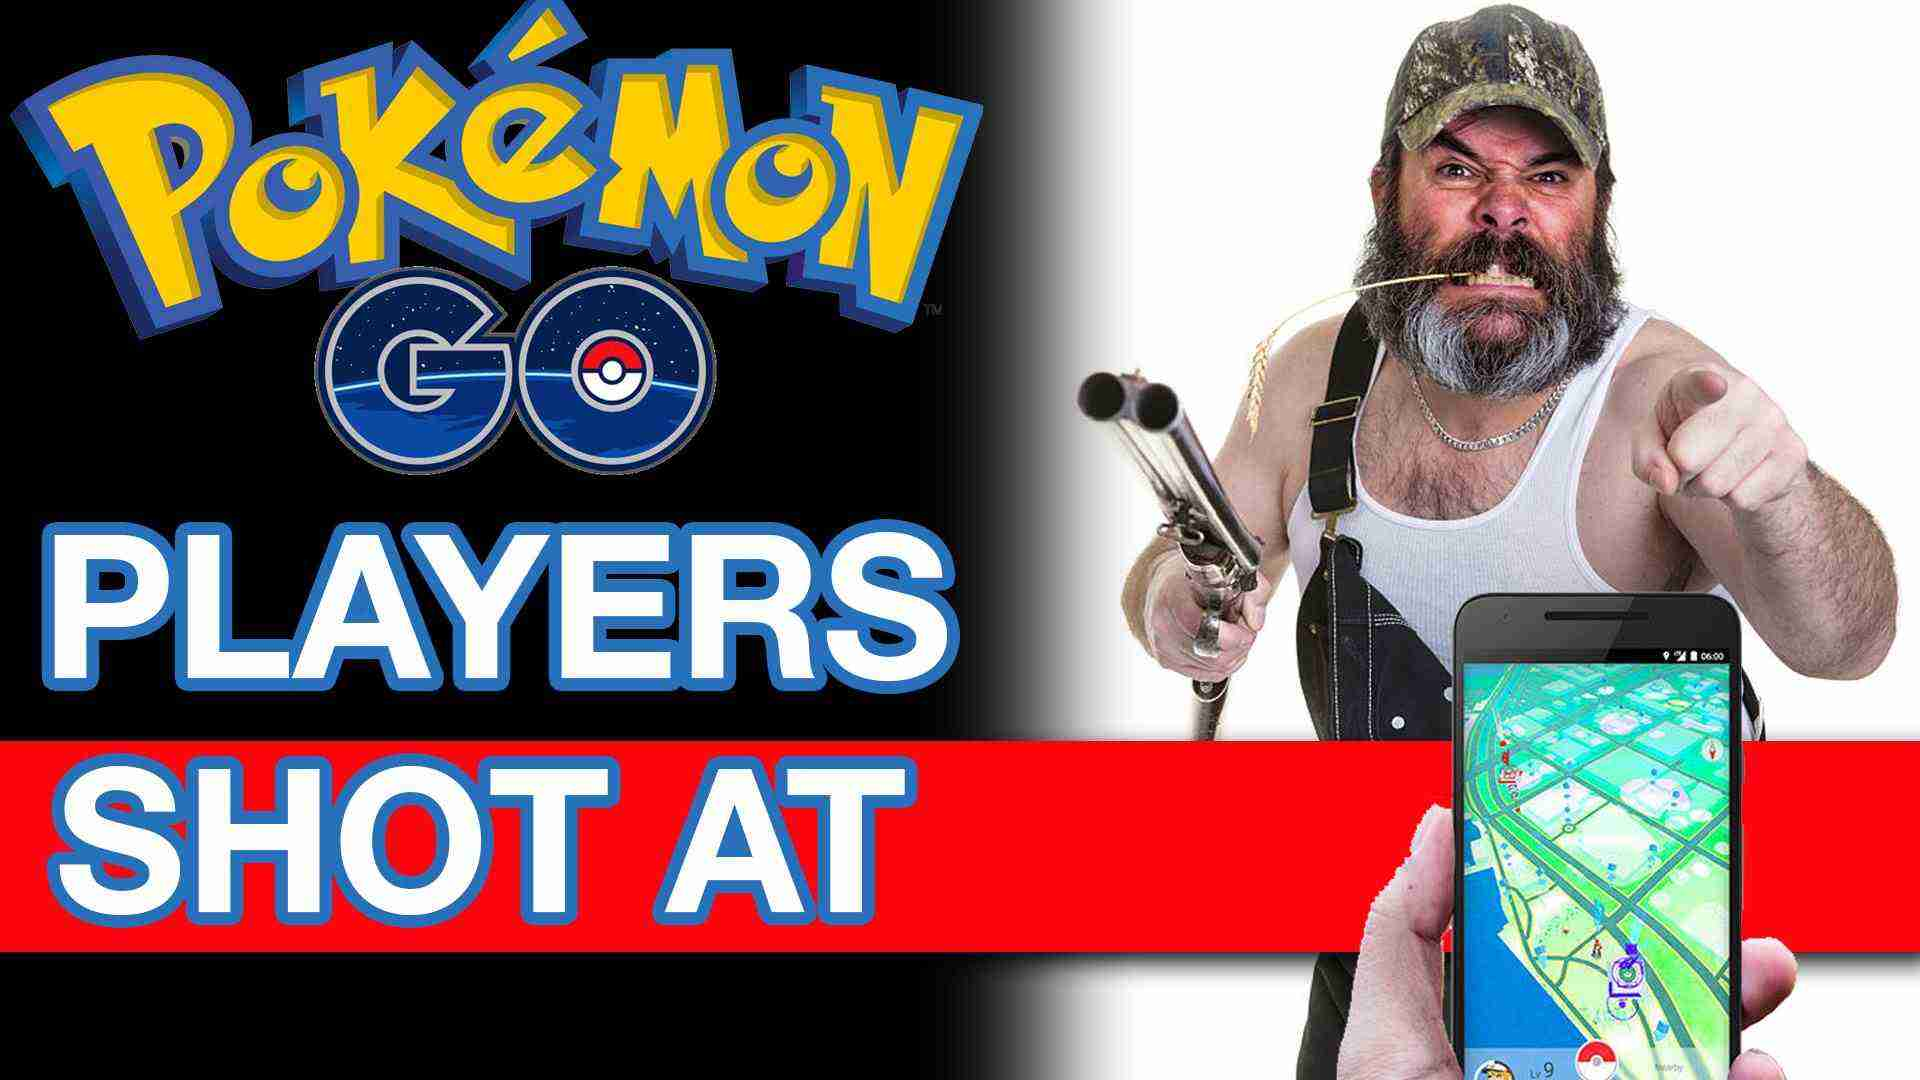 Pokemon Go Players Shot At – Inside Gaming Daily